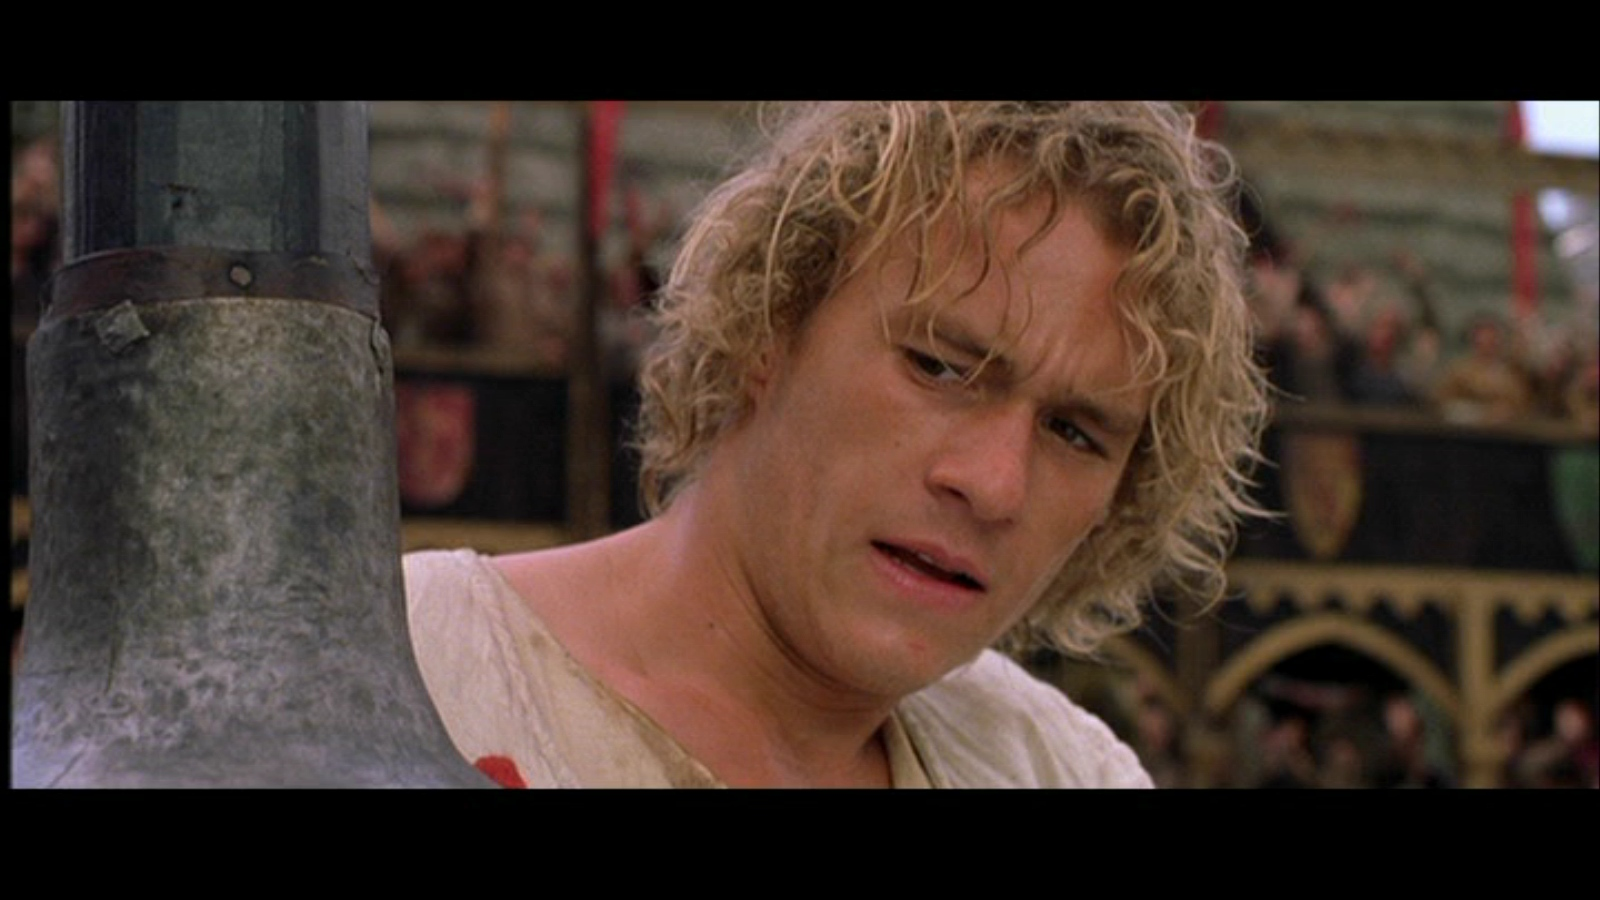 knights tale The modern world is somewhat as enthralled with the idea of knight's and chivalry as they were in geoffrey chaucer's time the knight's tale is an adept adaptation of the life of.